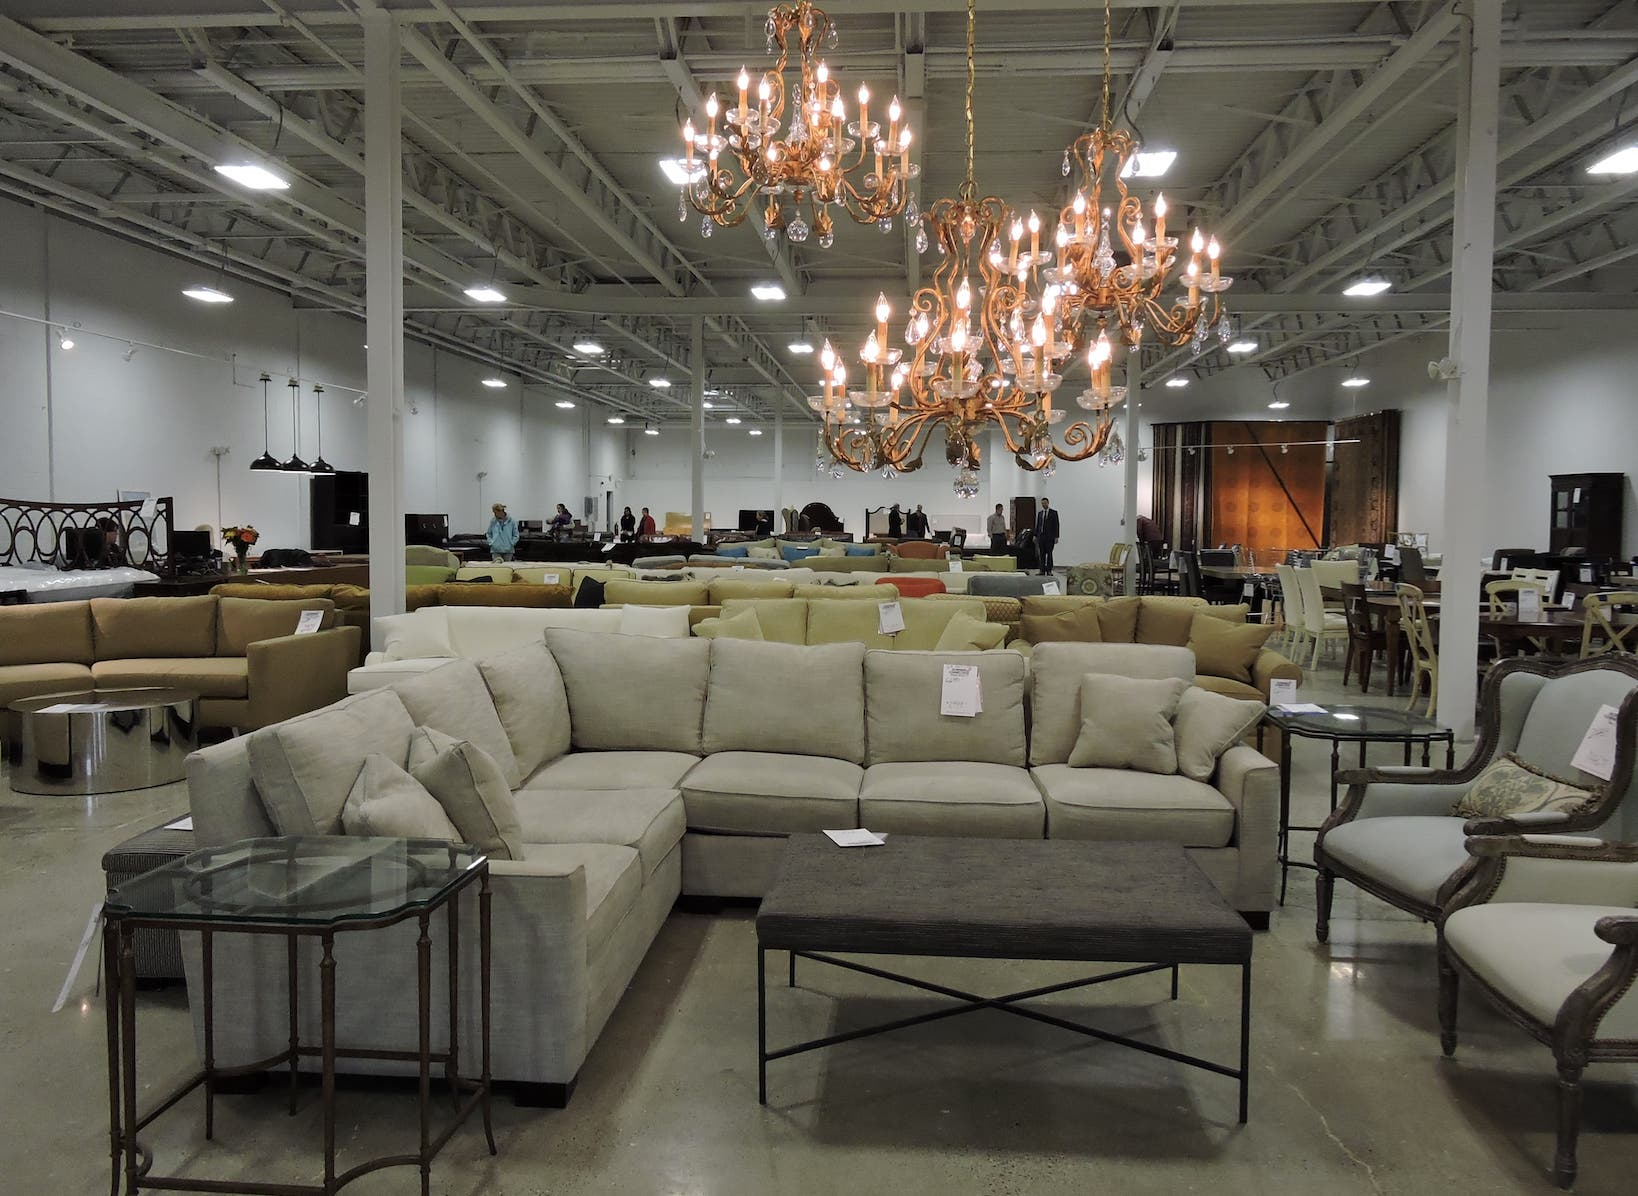 Gorman S Hosts Summer Warehouse Sale At New Three Day Clearance